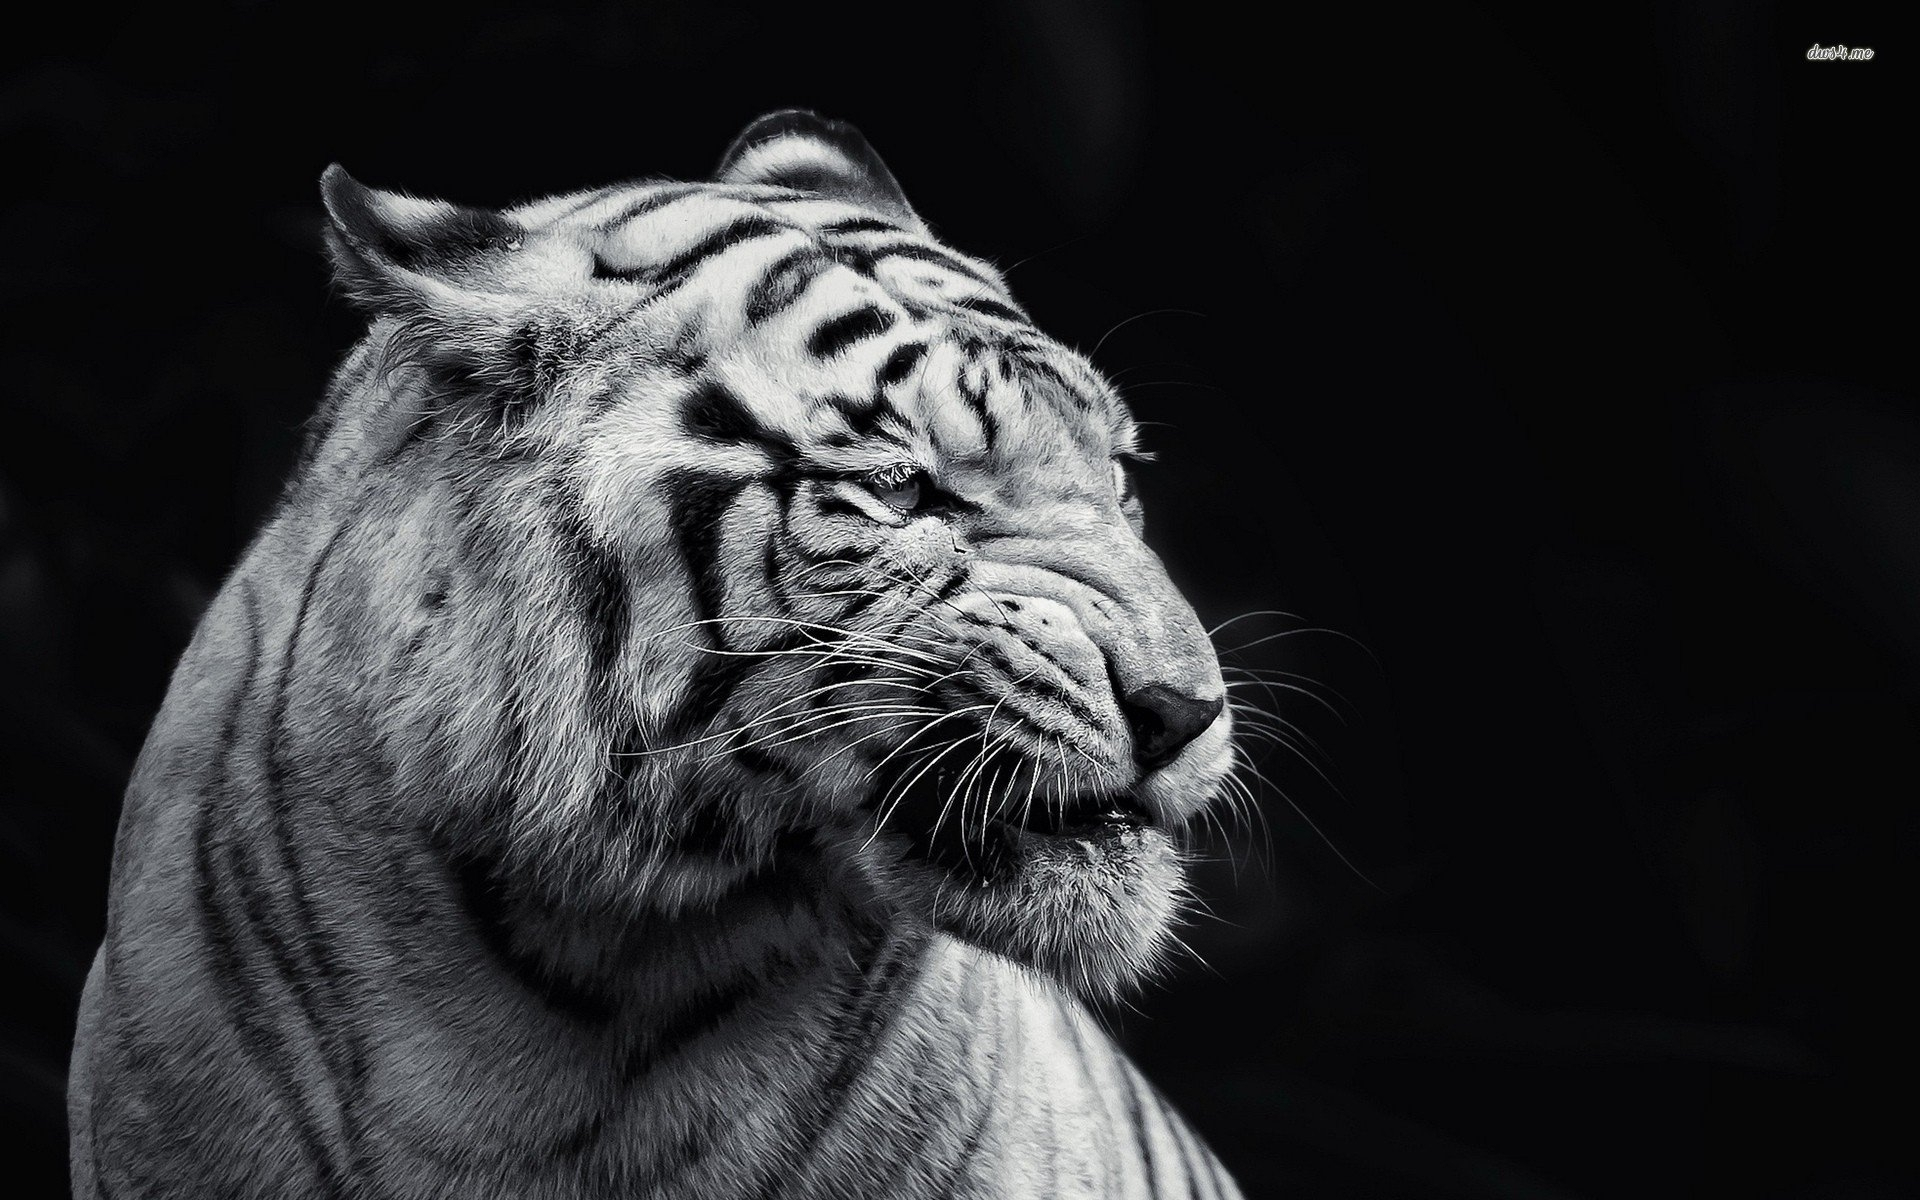 10 Best Angry Lion Wallpaper Black And White Full Hd 1080p For Pc